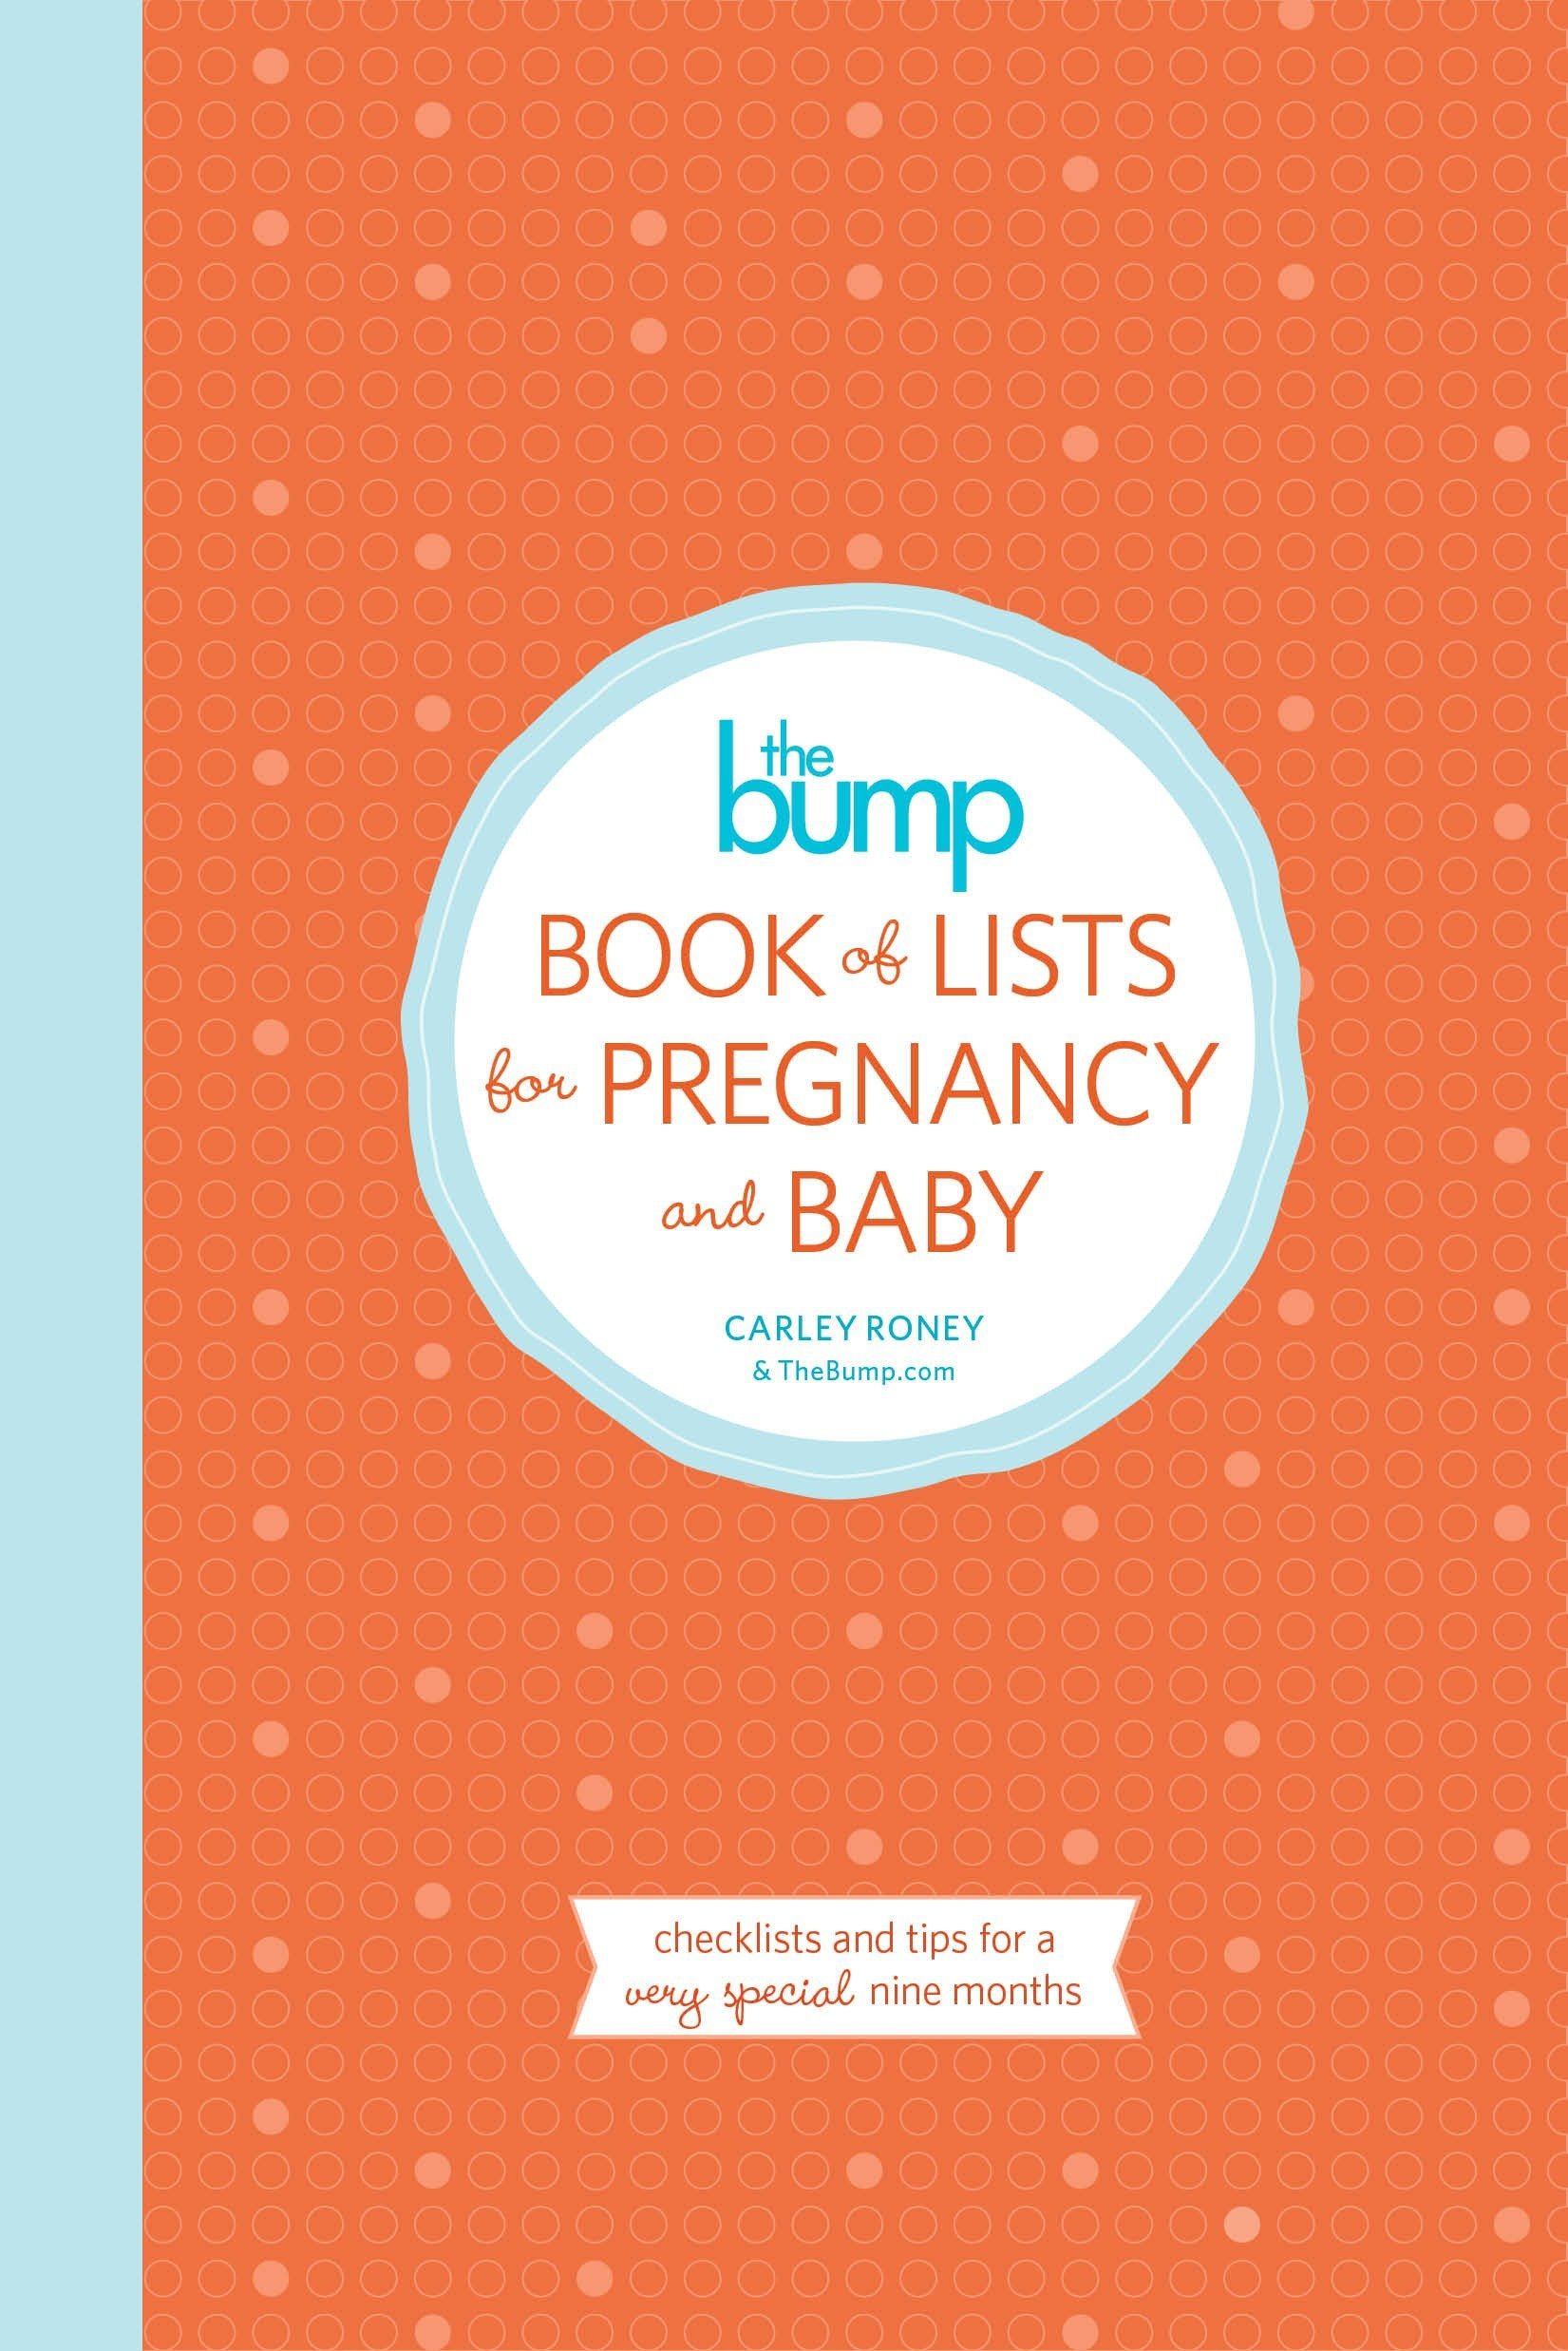 the bump book of lists for pregnancy and baby checklists and tips for a very special nine months carley roney the editors of thebumpcom 9780804185745